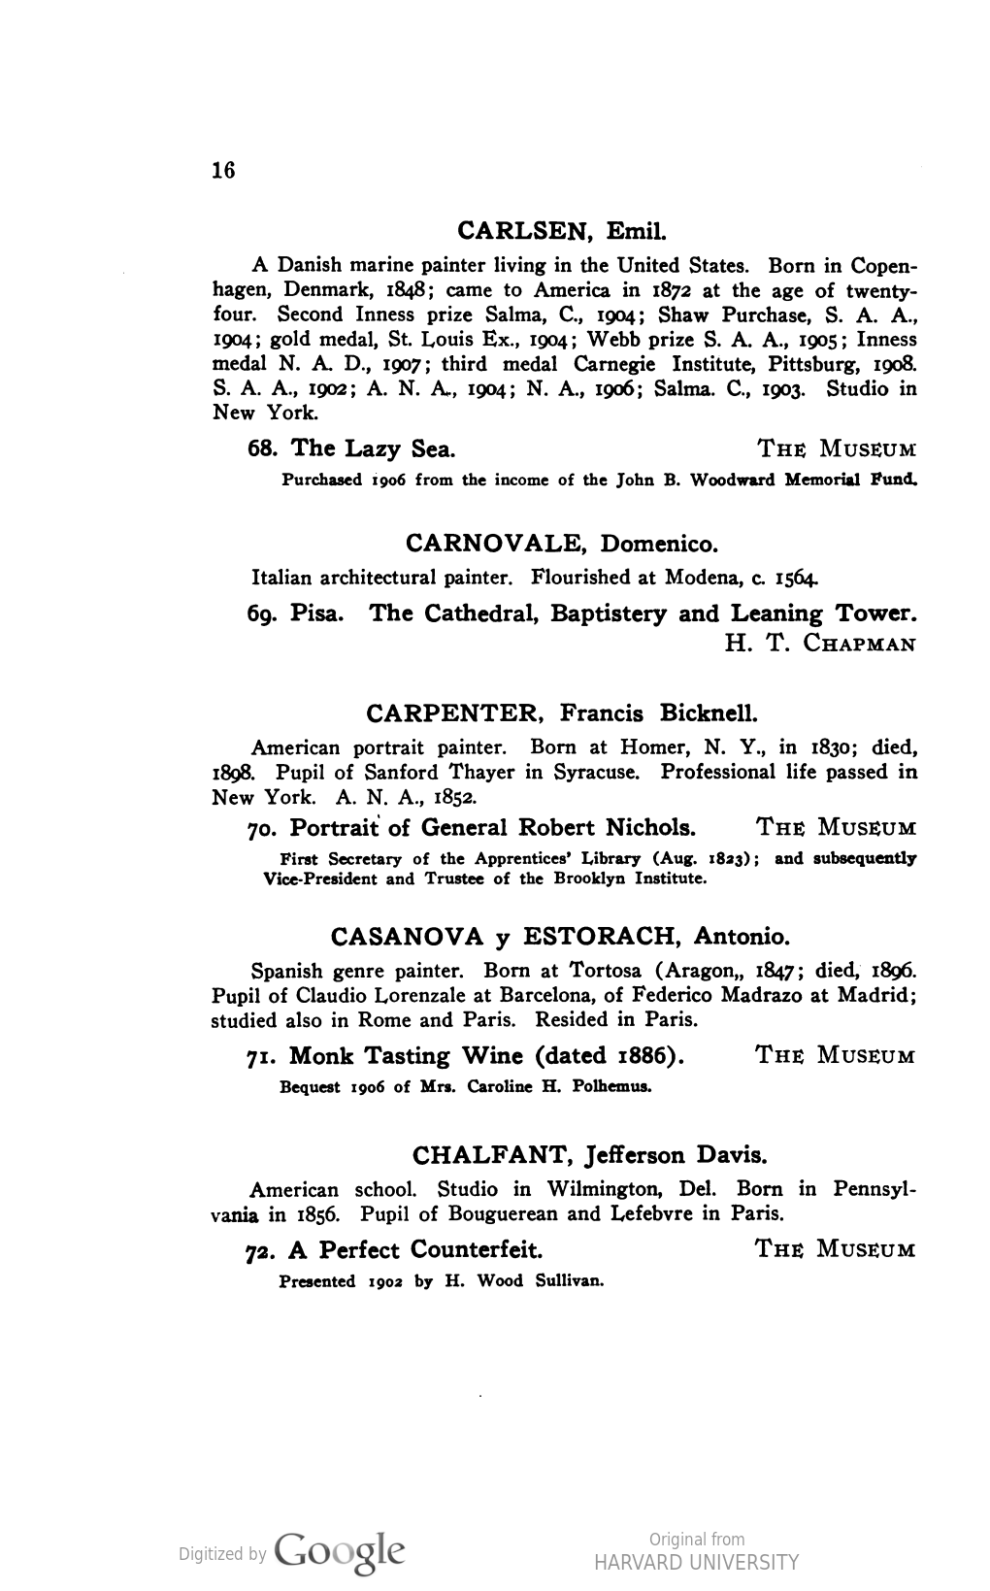 Catalogue of Paintings by William H Goodyear and A D Savage, Brooklyn Institute of Arts and Sciences, Brooklyn, NY, 1910